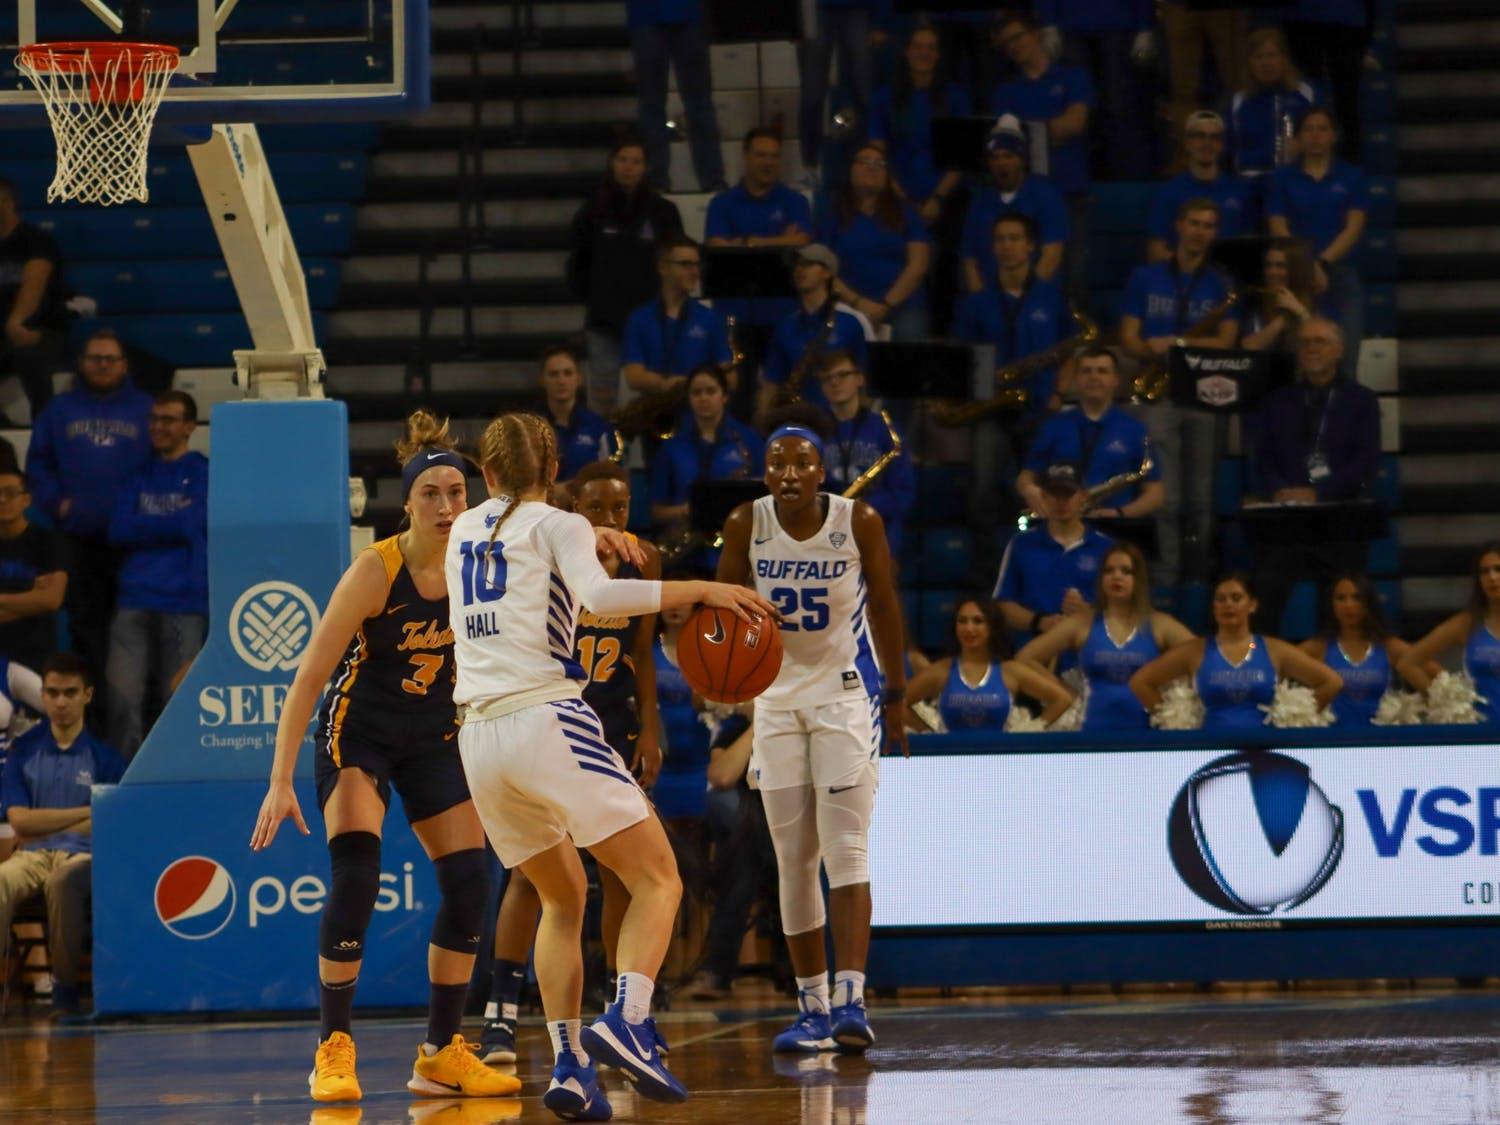 Junior guard Hanna Hall dribbles the ball at Saturday's game against Toledo.